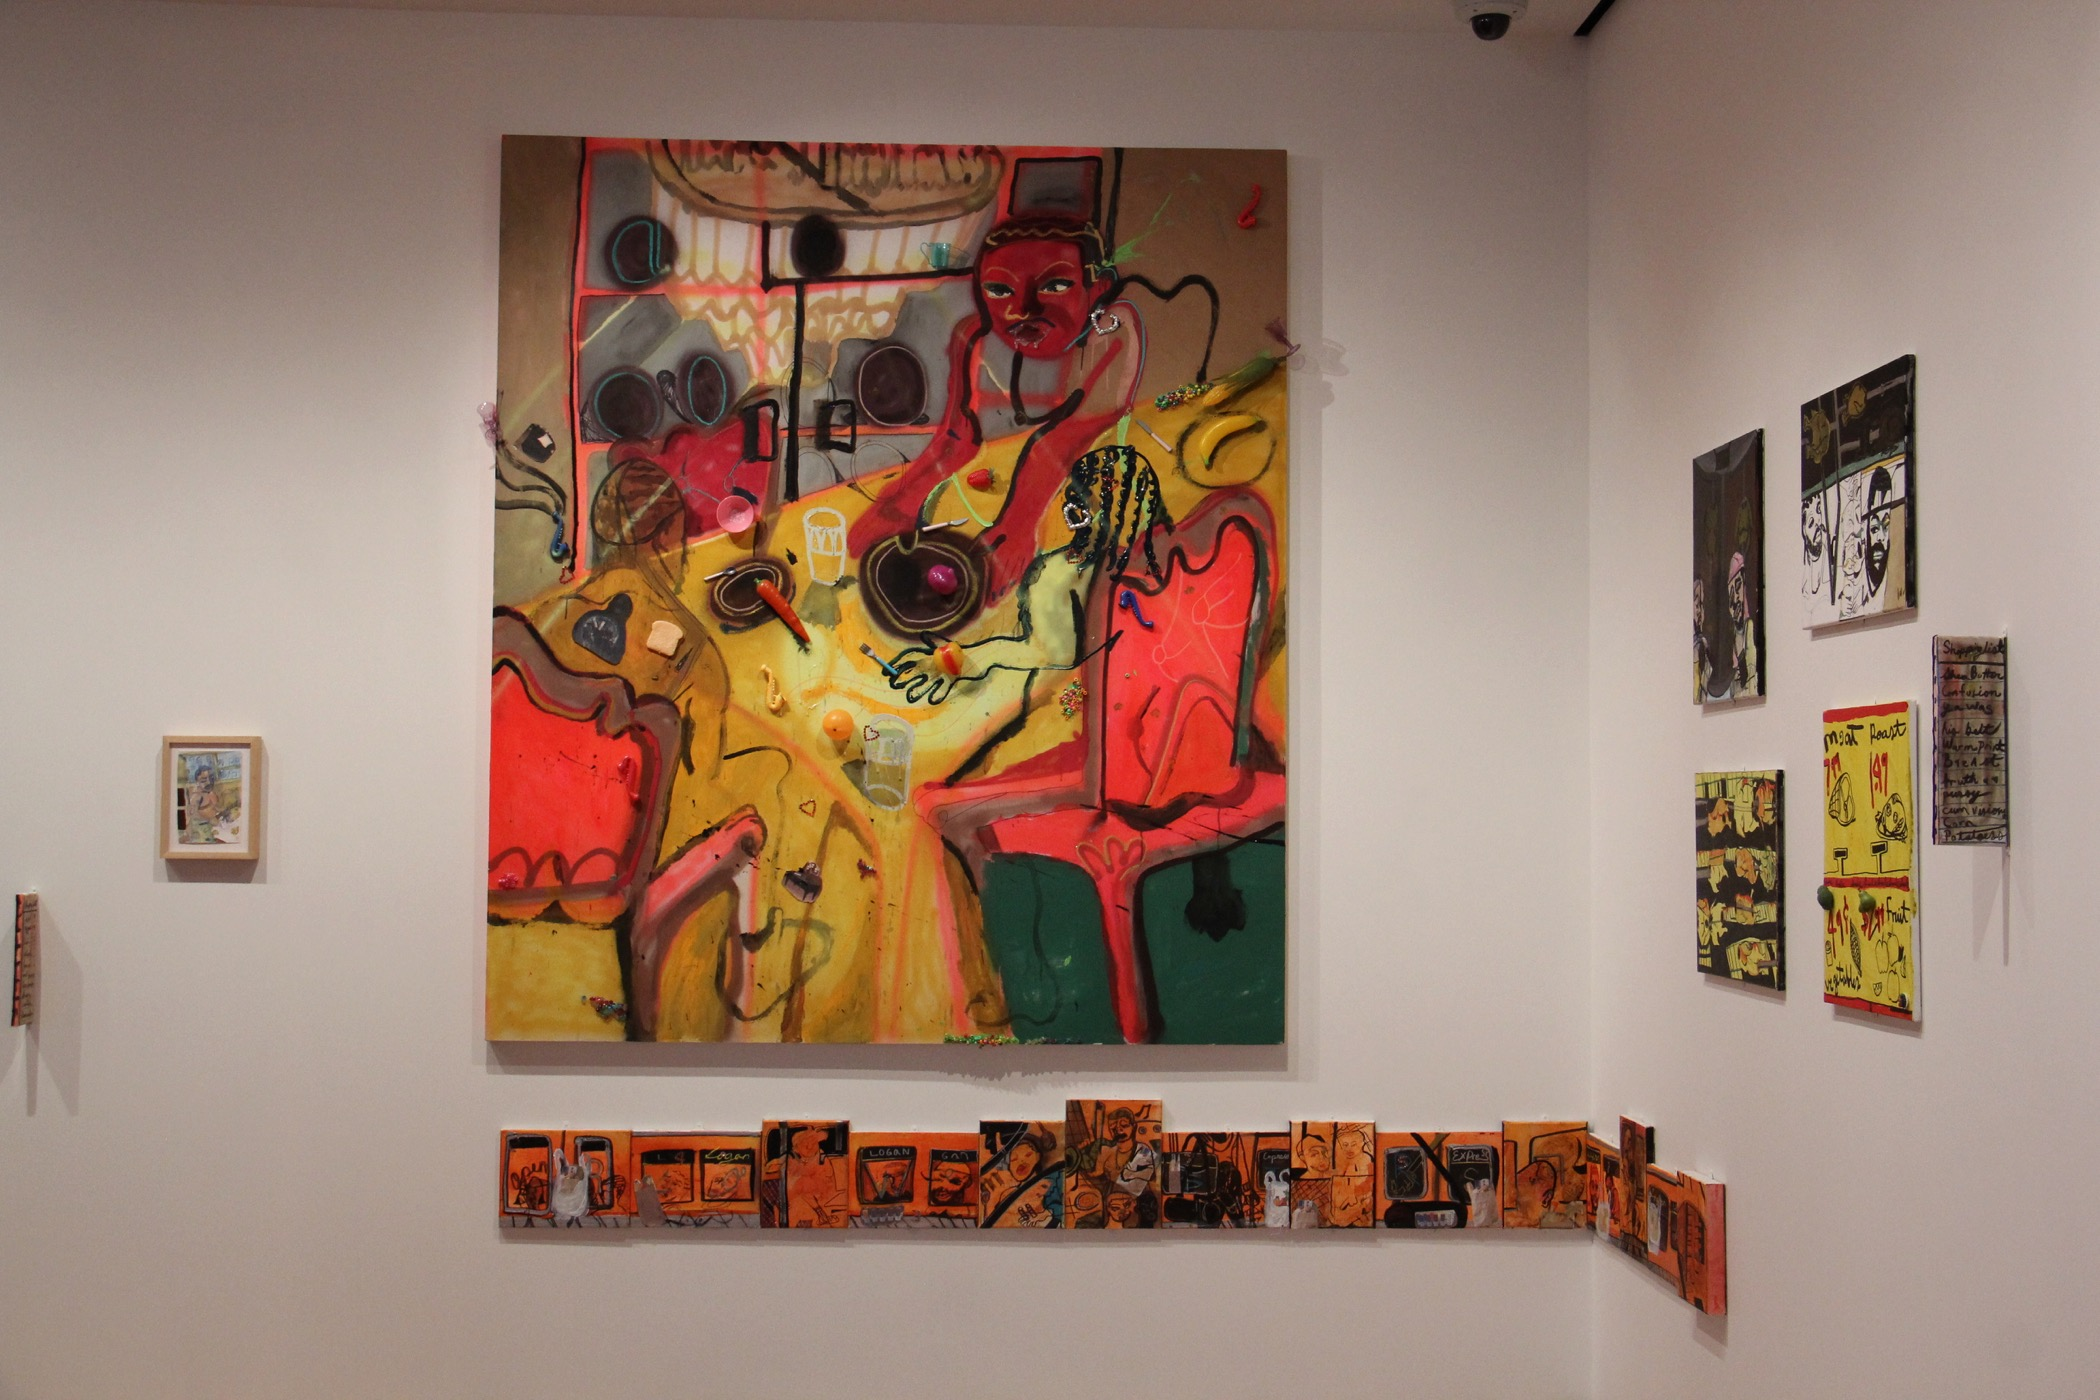 The work of Philadelphia artist Jonathan Lyndon Chase is displayed in the new contemporary art galleries at Philadelphia Museum of Art. (Emma Lee/WHYY)